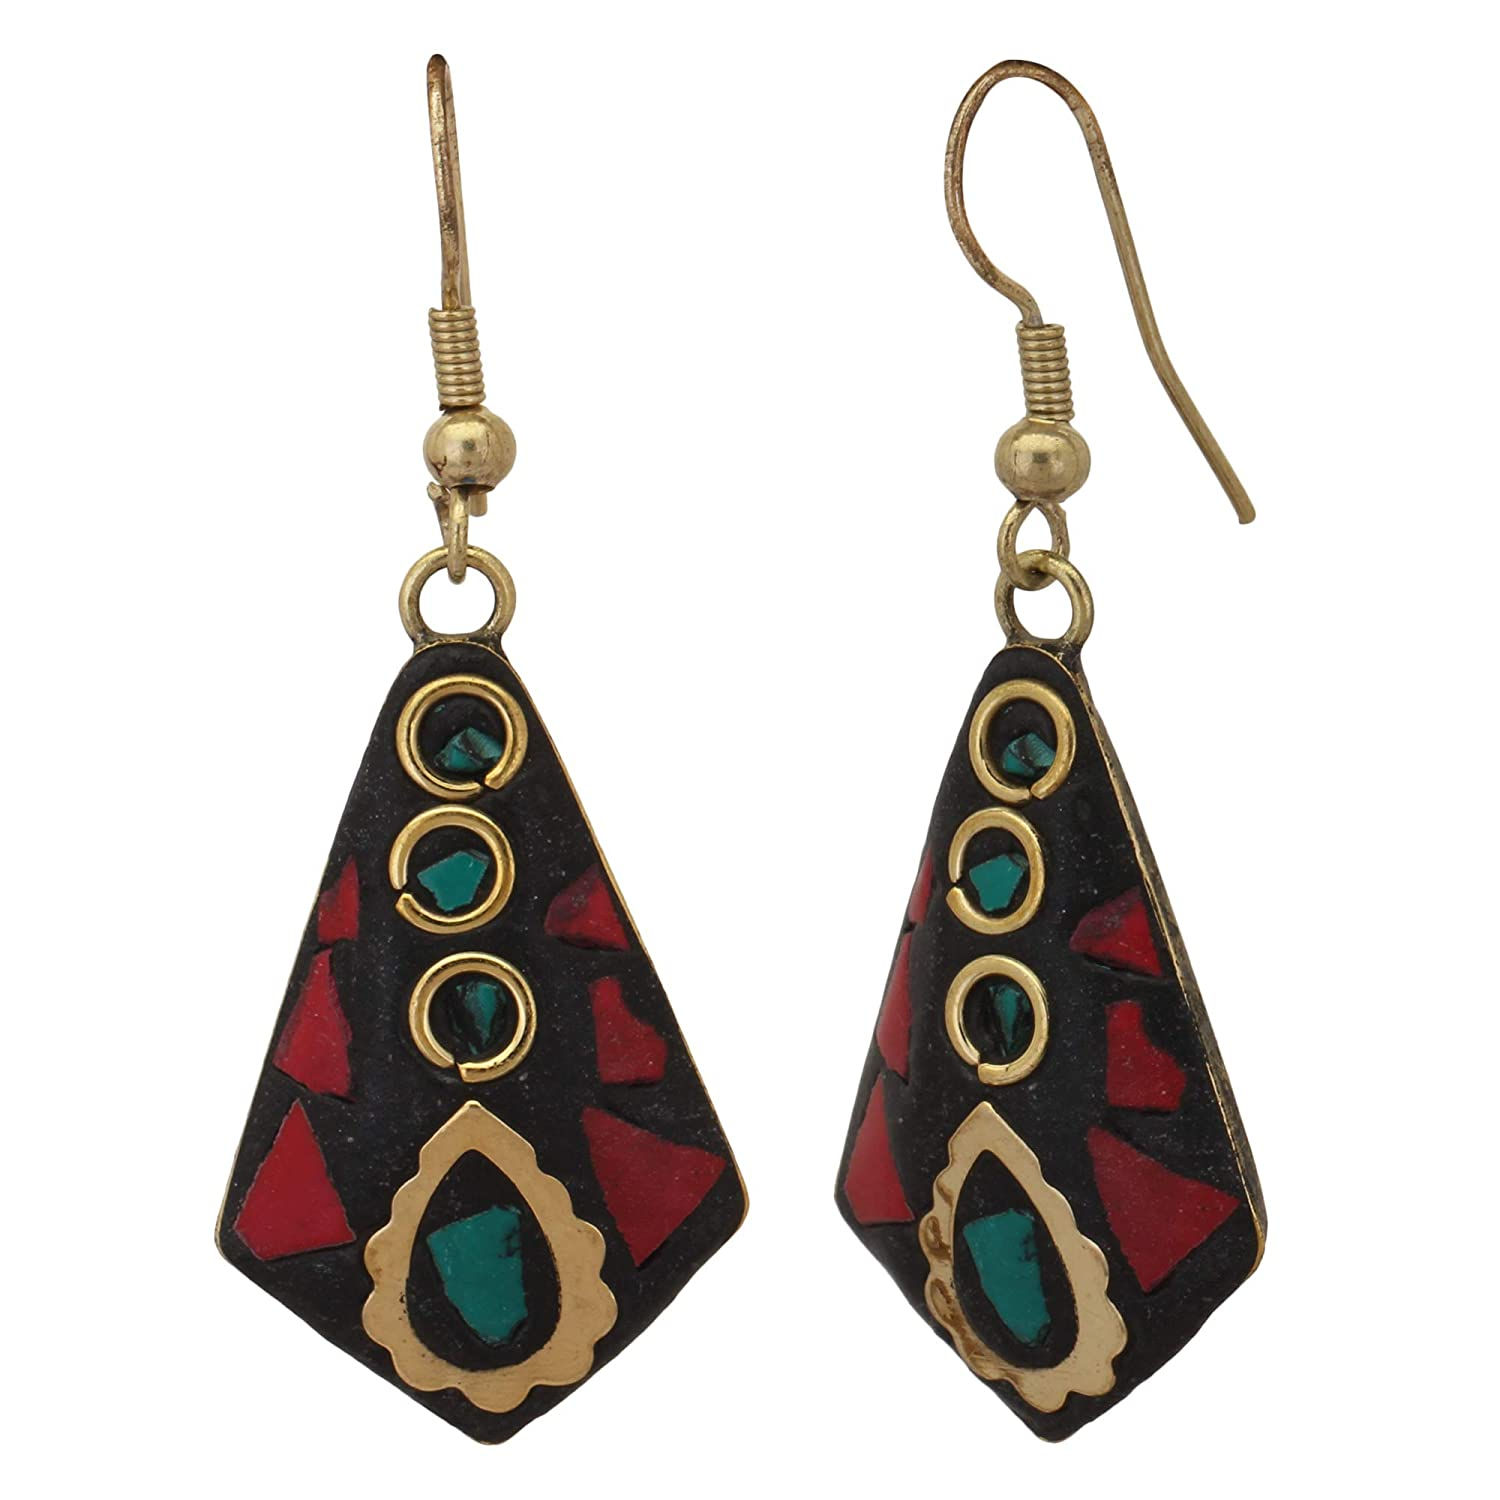 ZIKU JEWELRY Bohemian Dangle /& Drop Oar Shaped Earrings For Girls /& Women